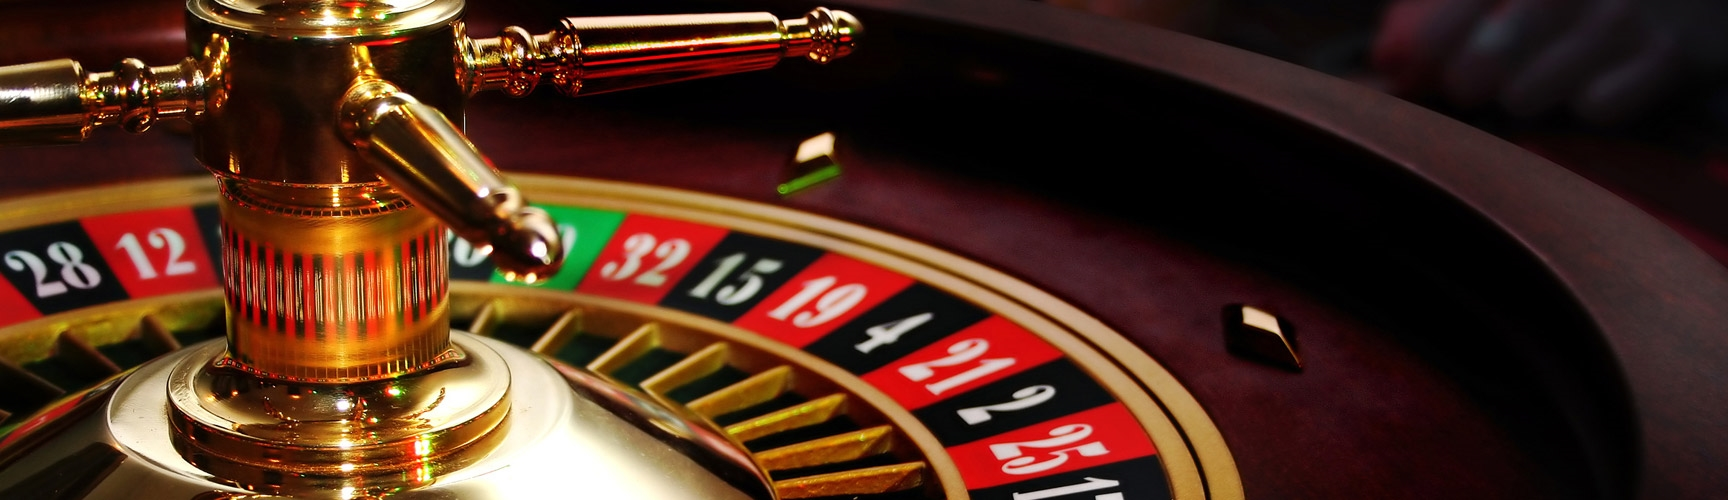 Tours gratuits 225 sur Casino On Net